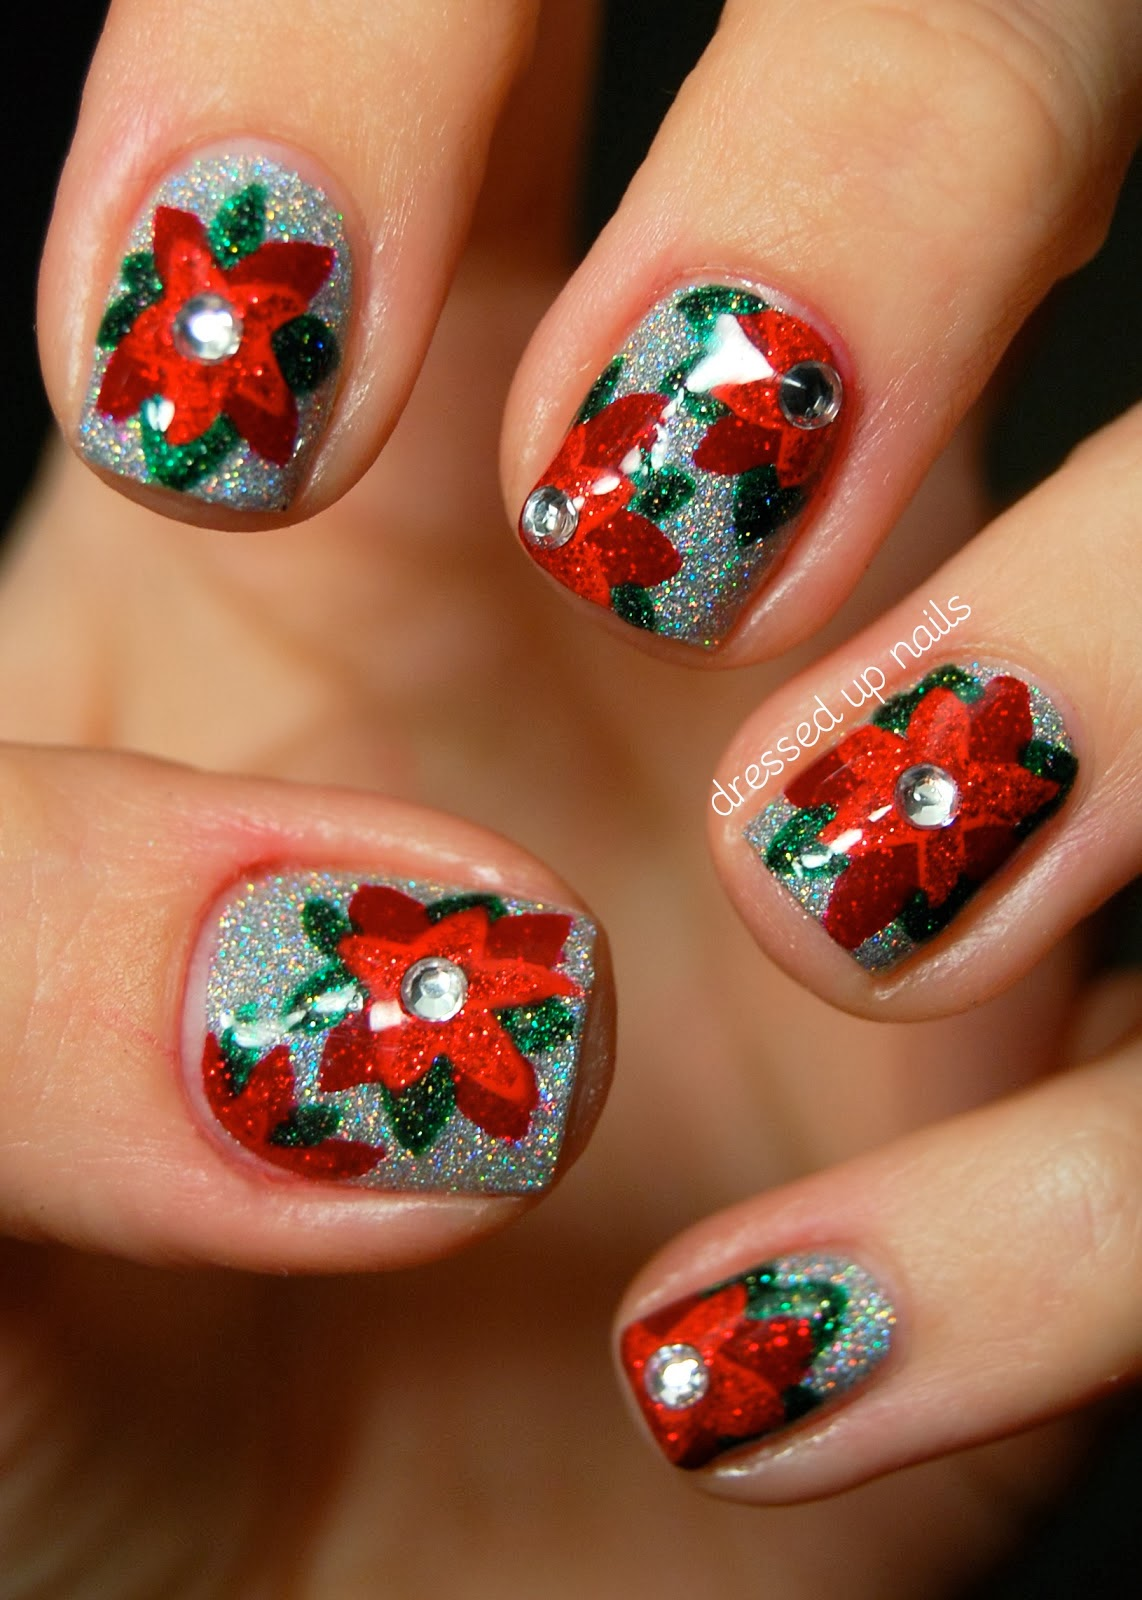 Maci Bookout Awesome Holiday Nail Art